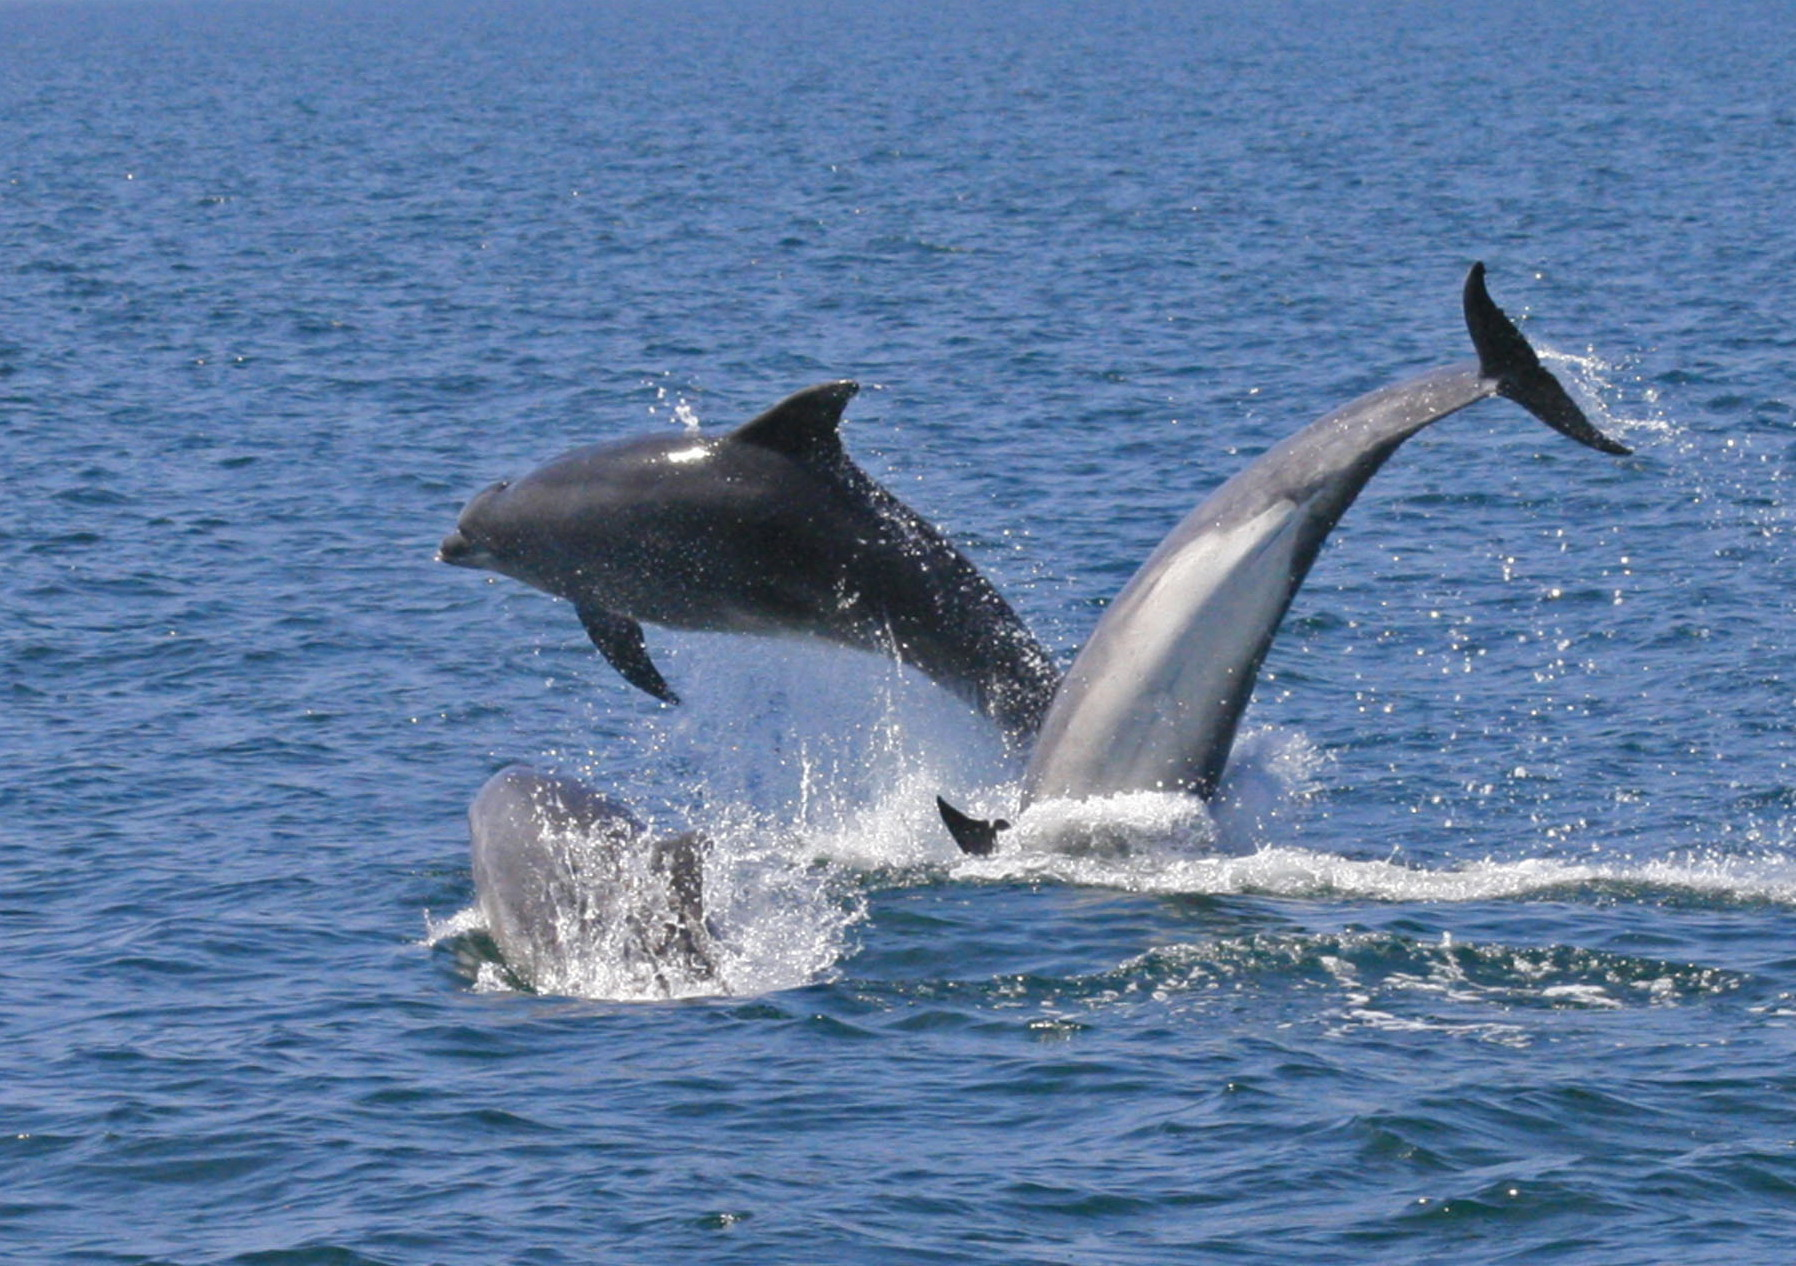 sea watch foundation free dolphin survey training in north wales